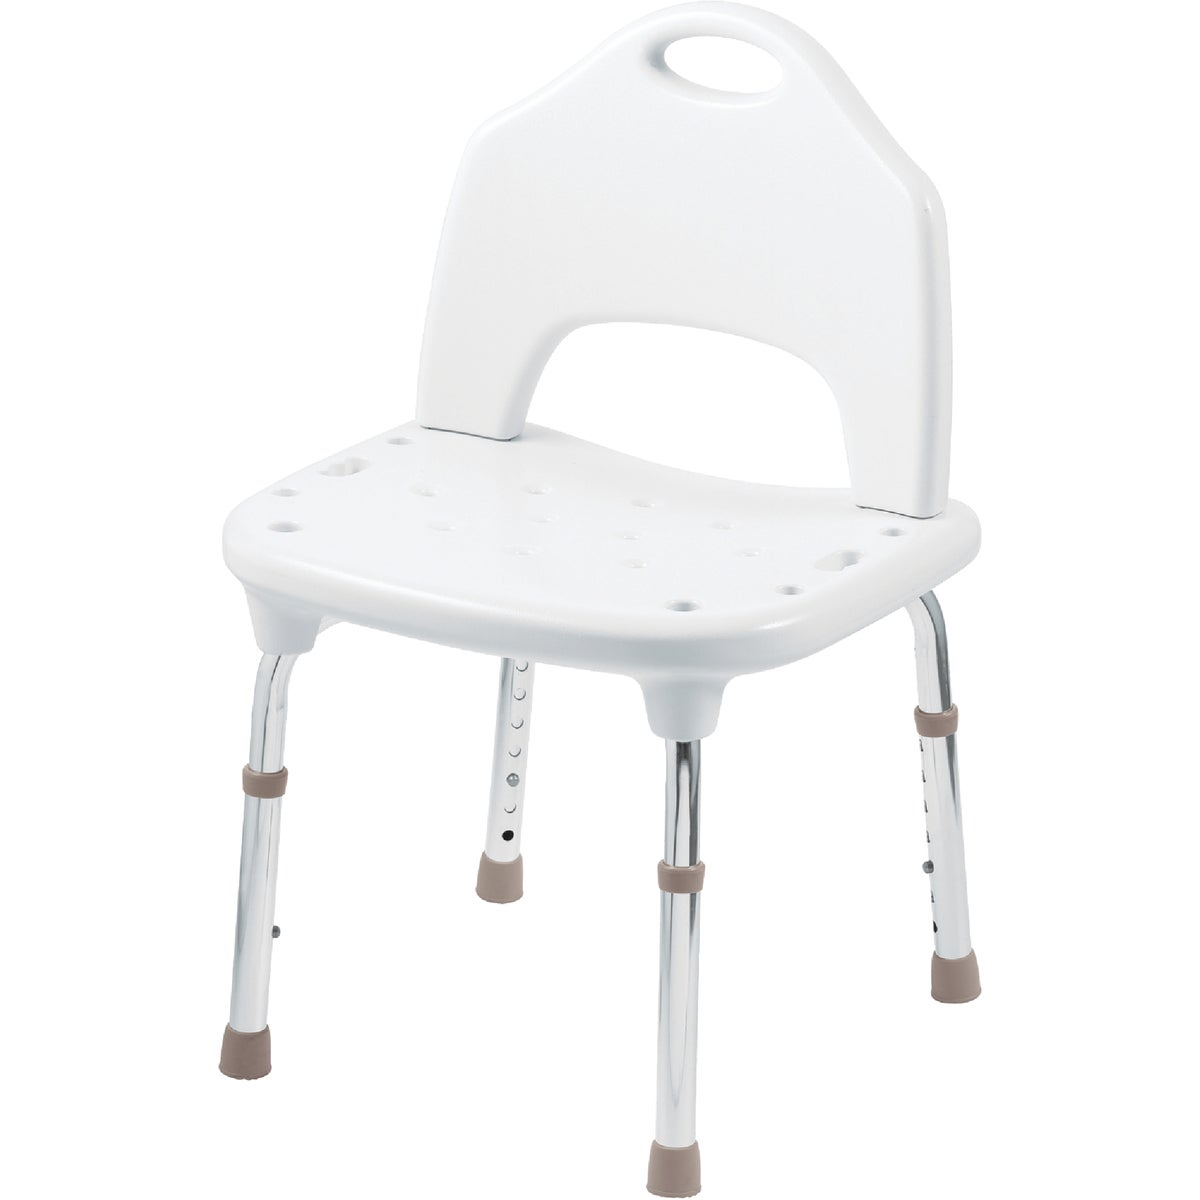 ADJUSTABLE SHOWER CHAIR - DN7060 by C S I Donner